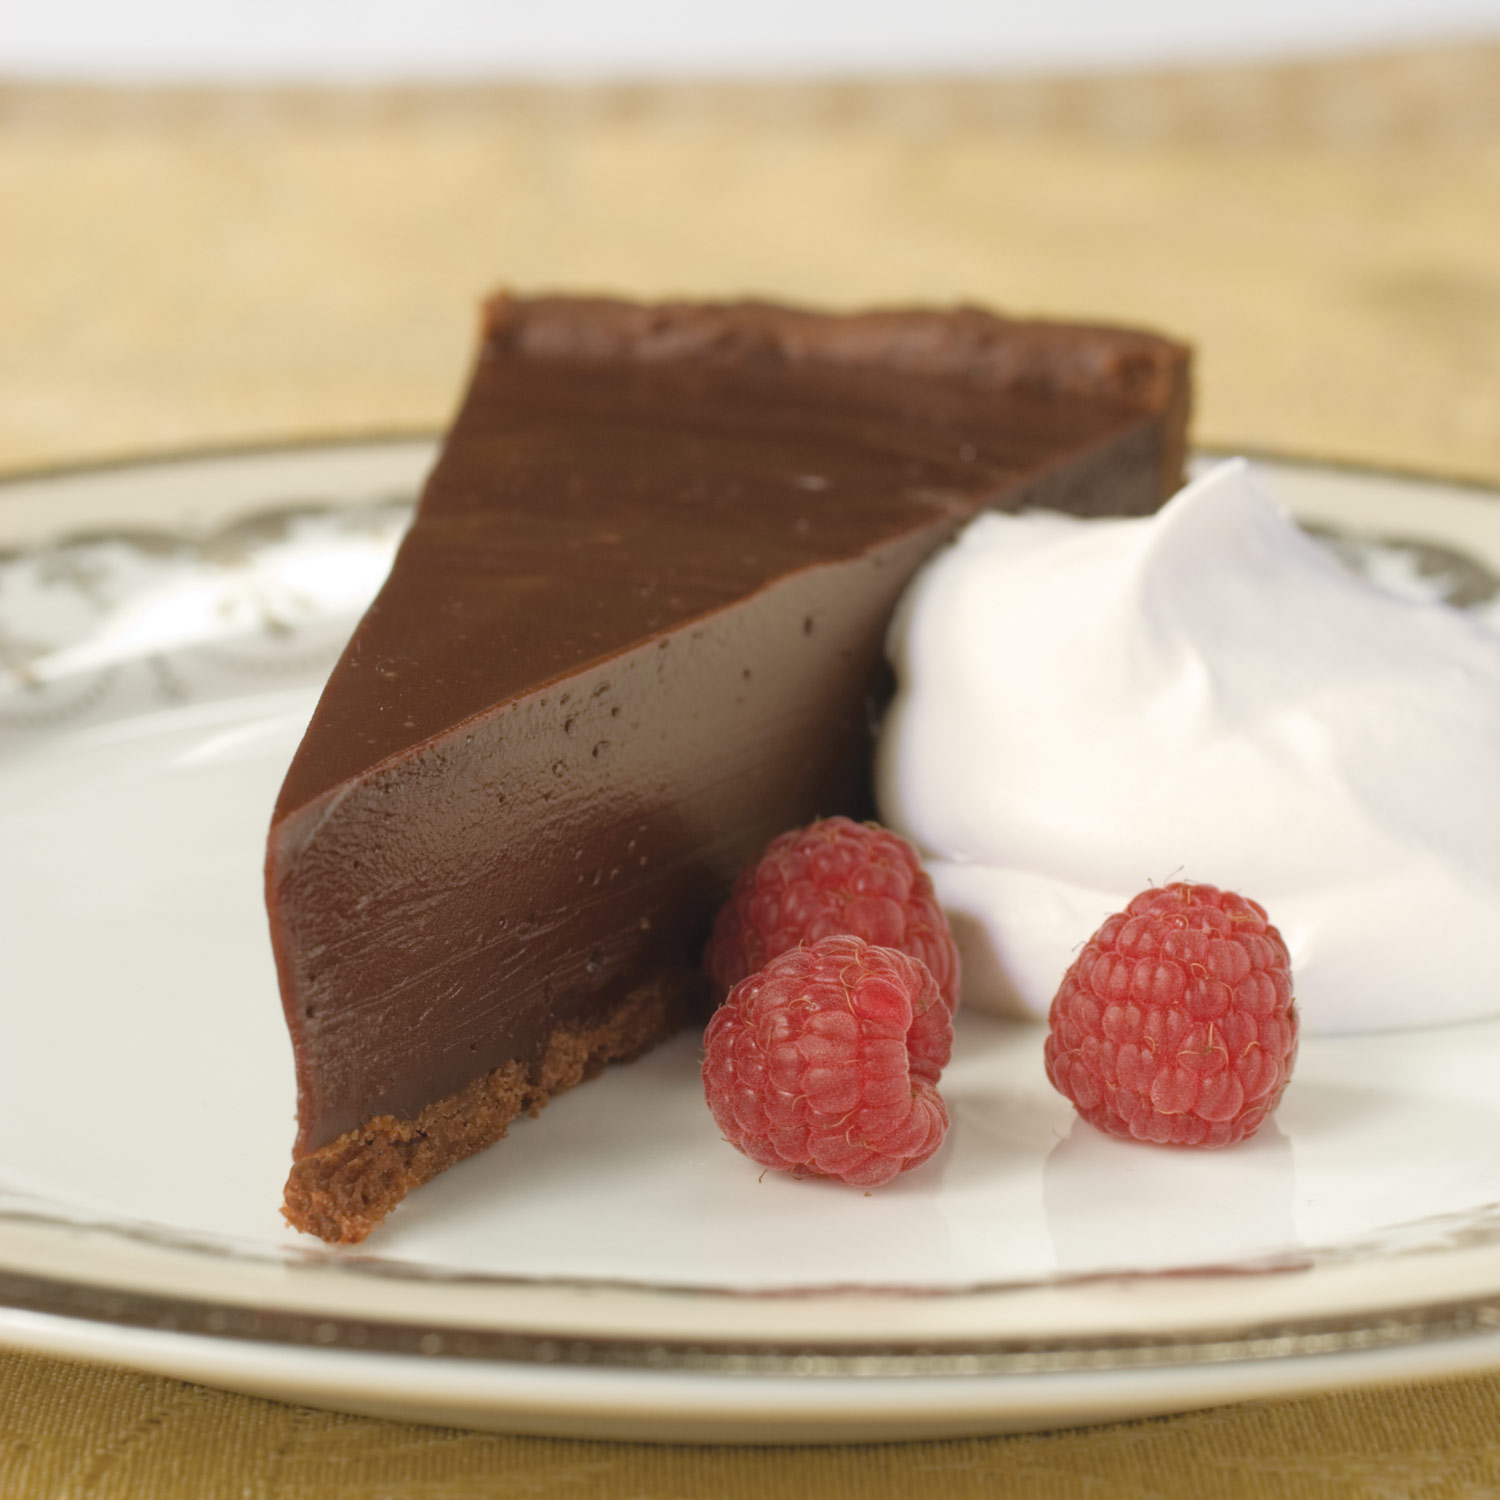 Chocolate Truffle Tart Recipe - Cook's Illustrated